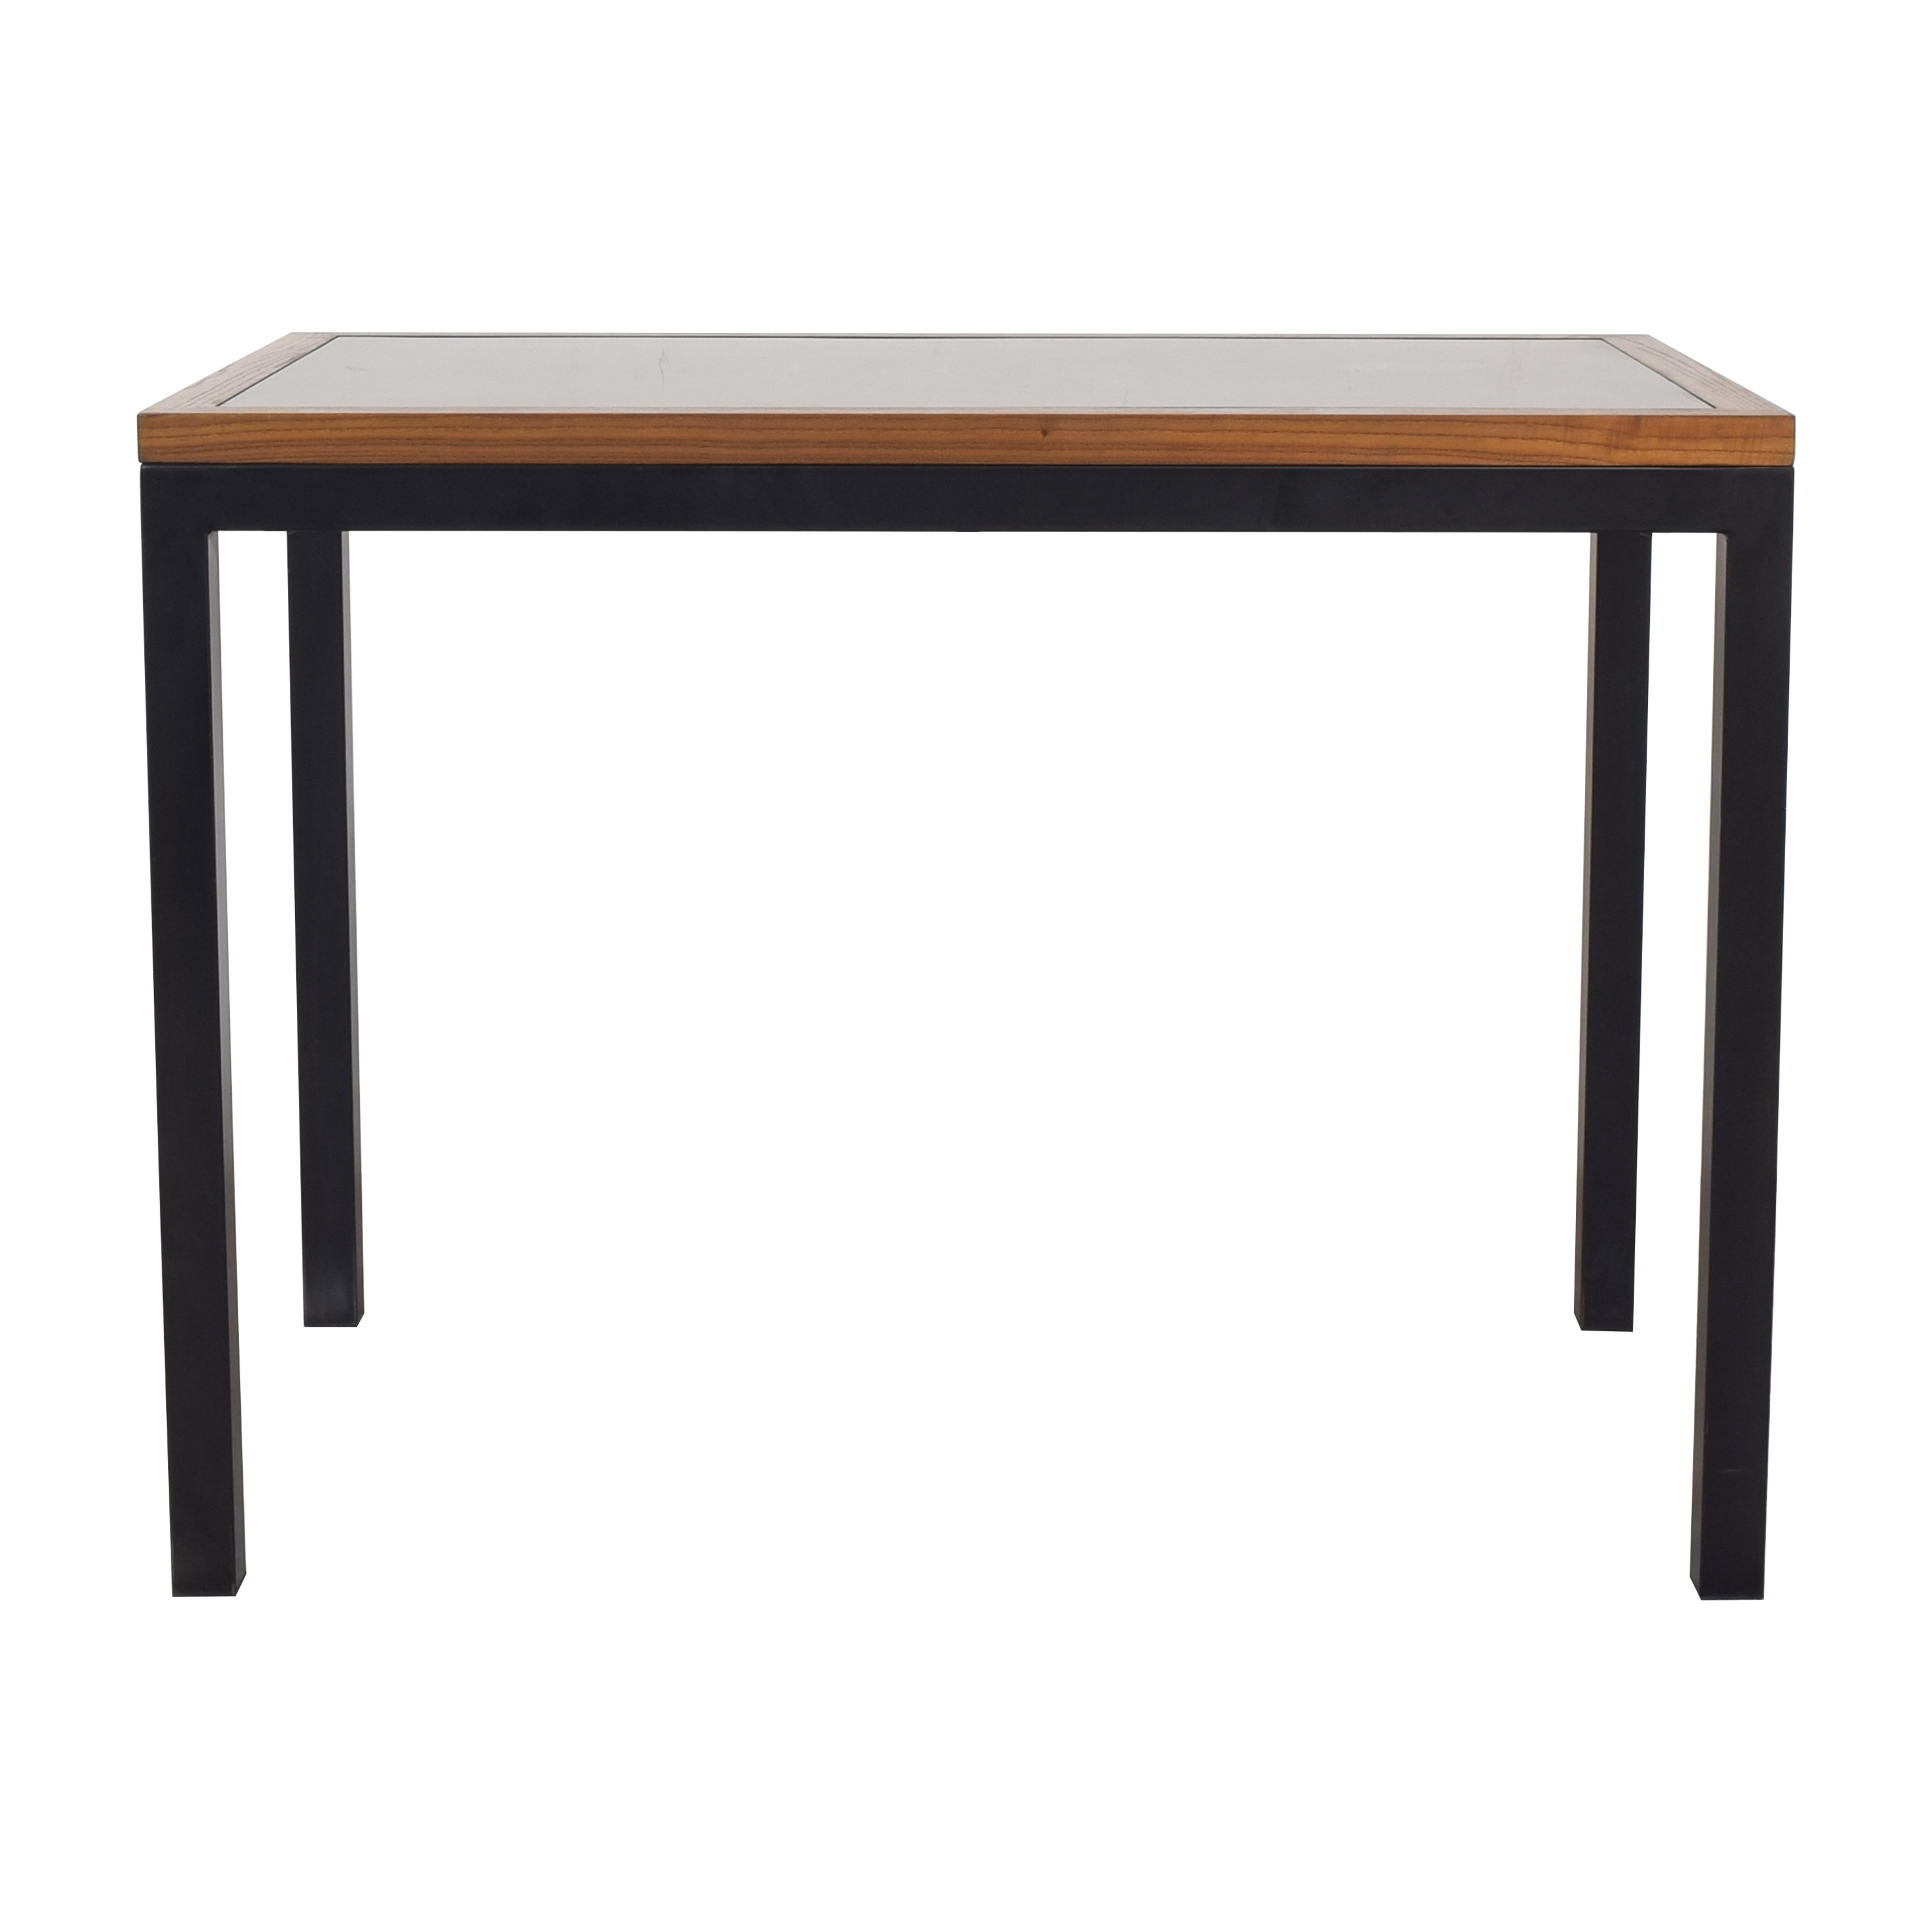 Maria Yee Maria Yee Tall Dining Table on sale